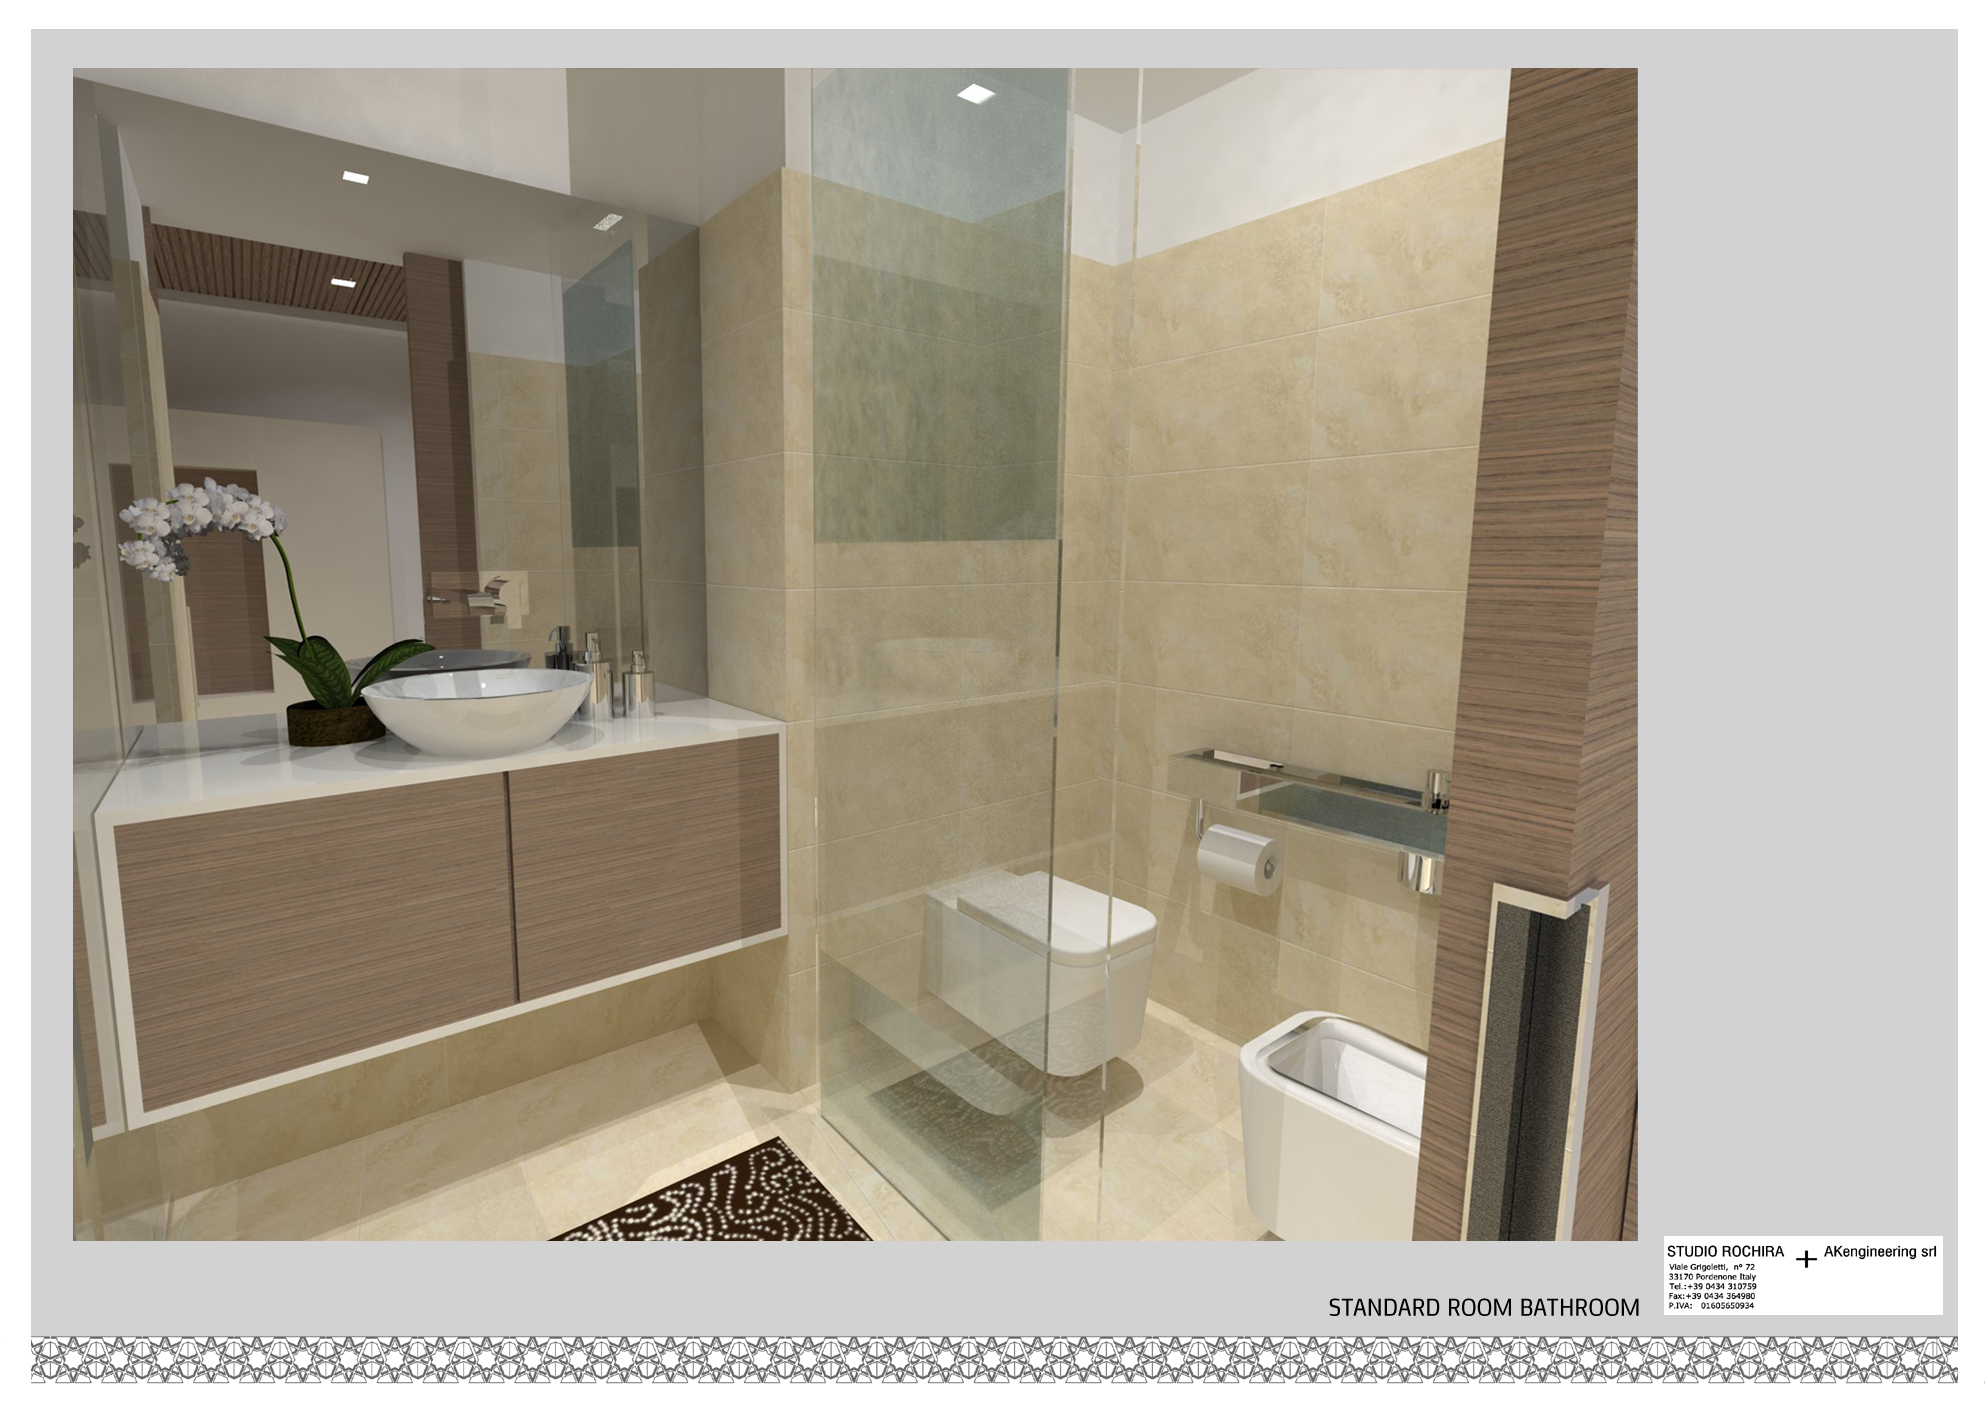 15_STANDARD BATHROOM